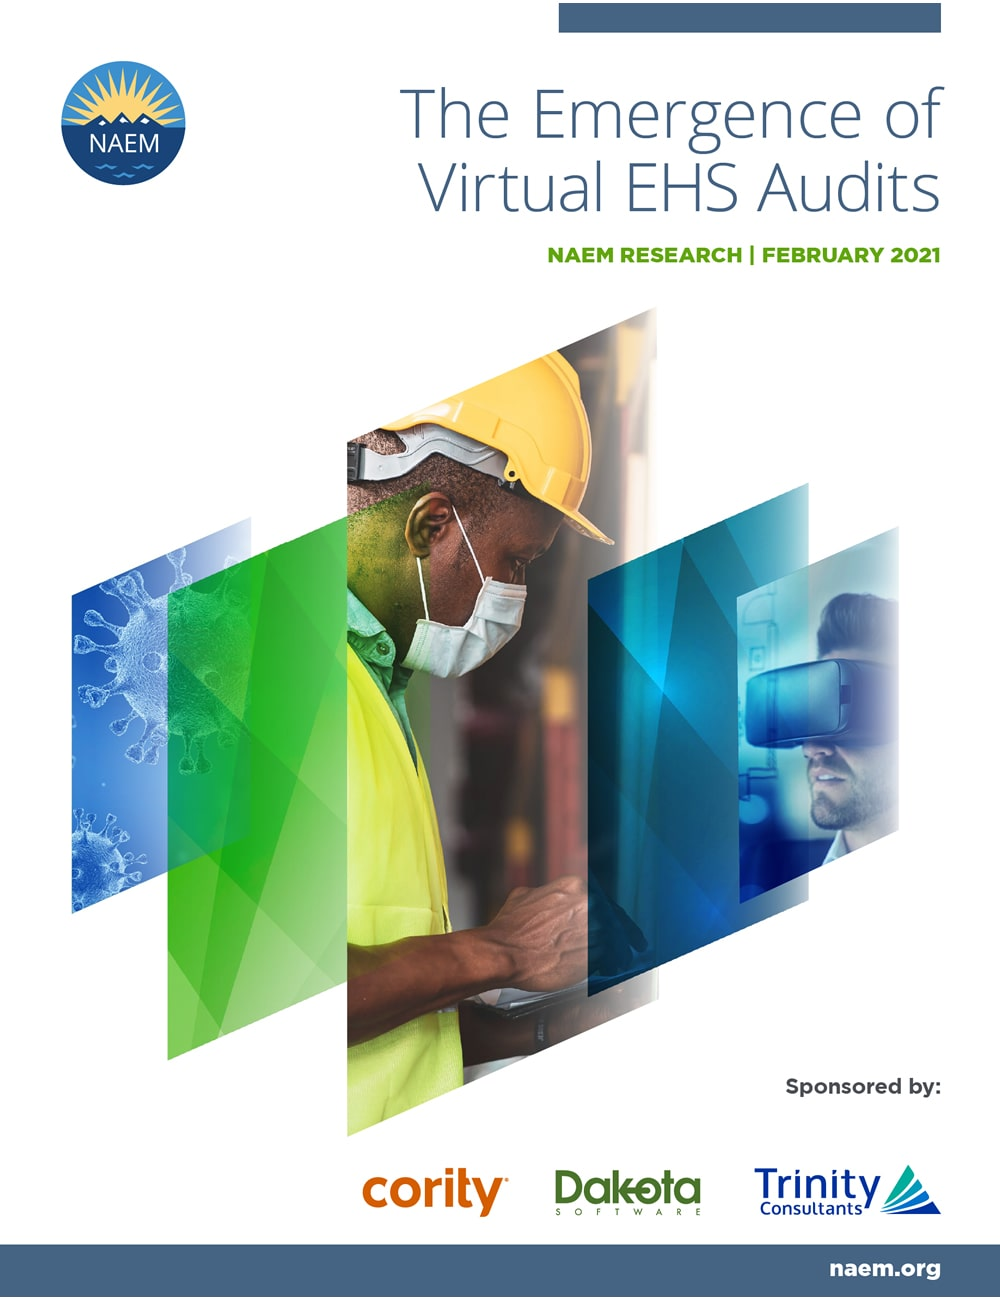 The Emergence of Virtual EHS Audits